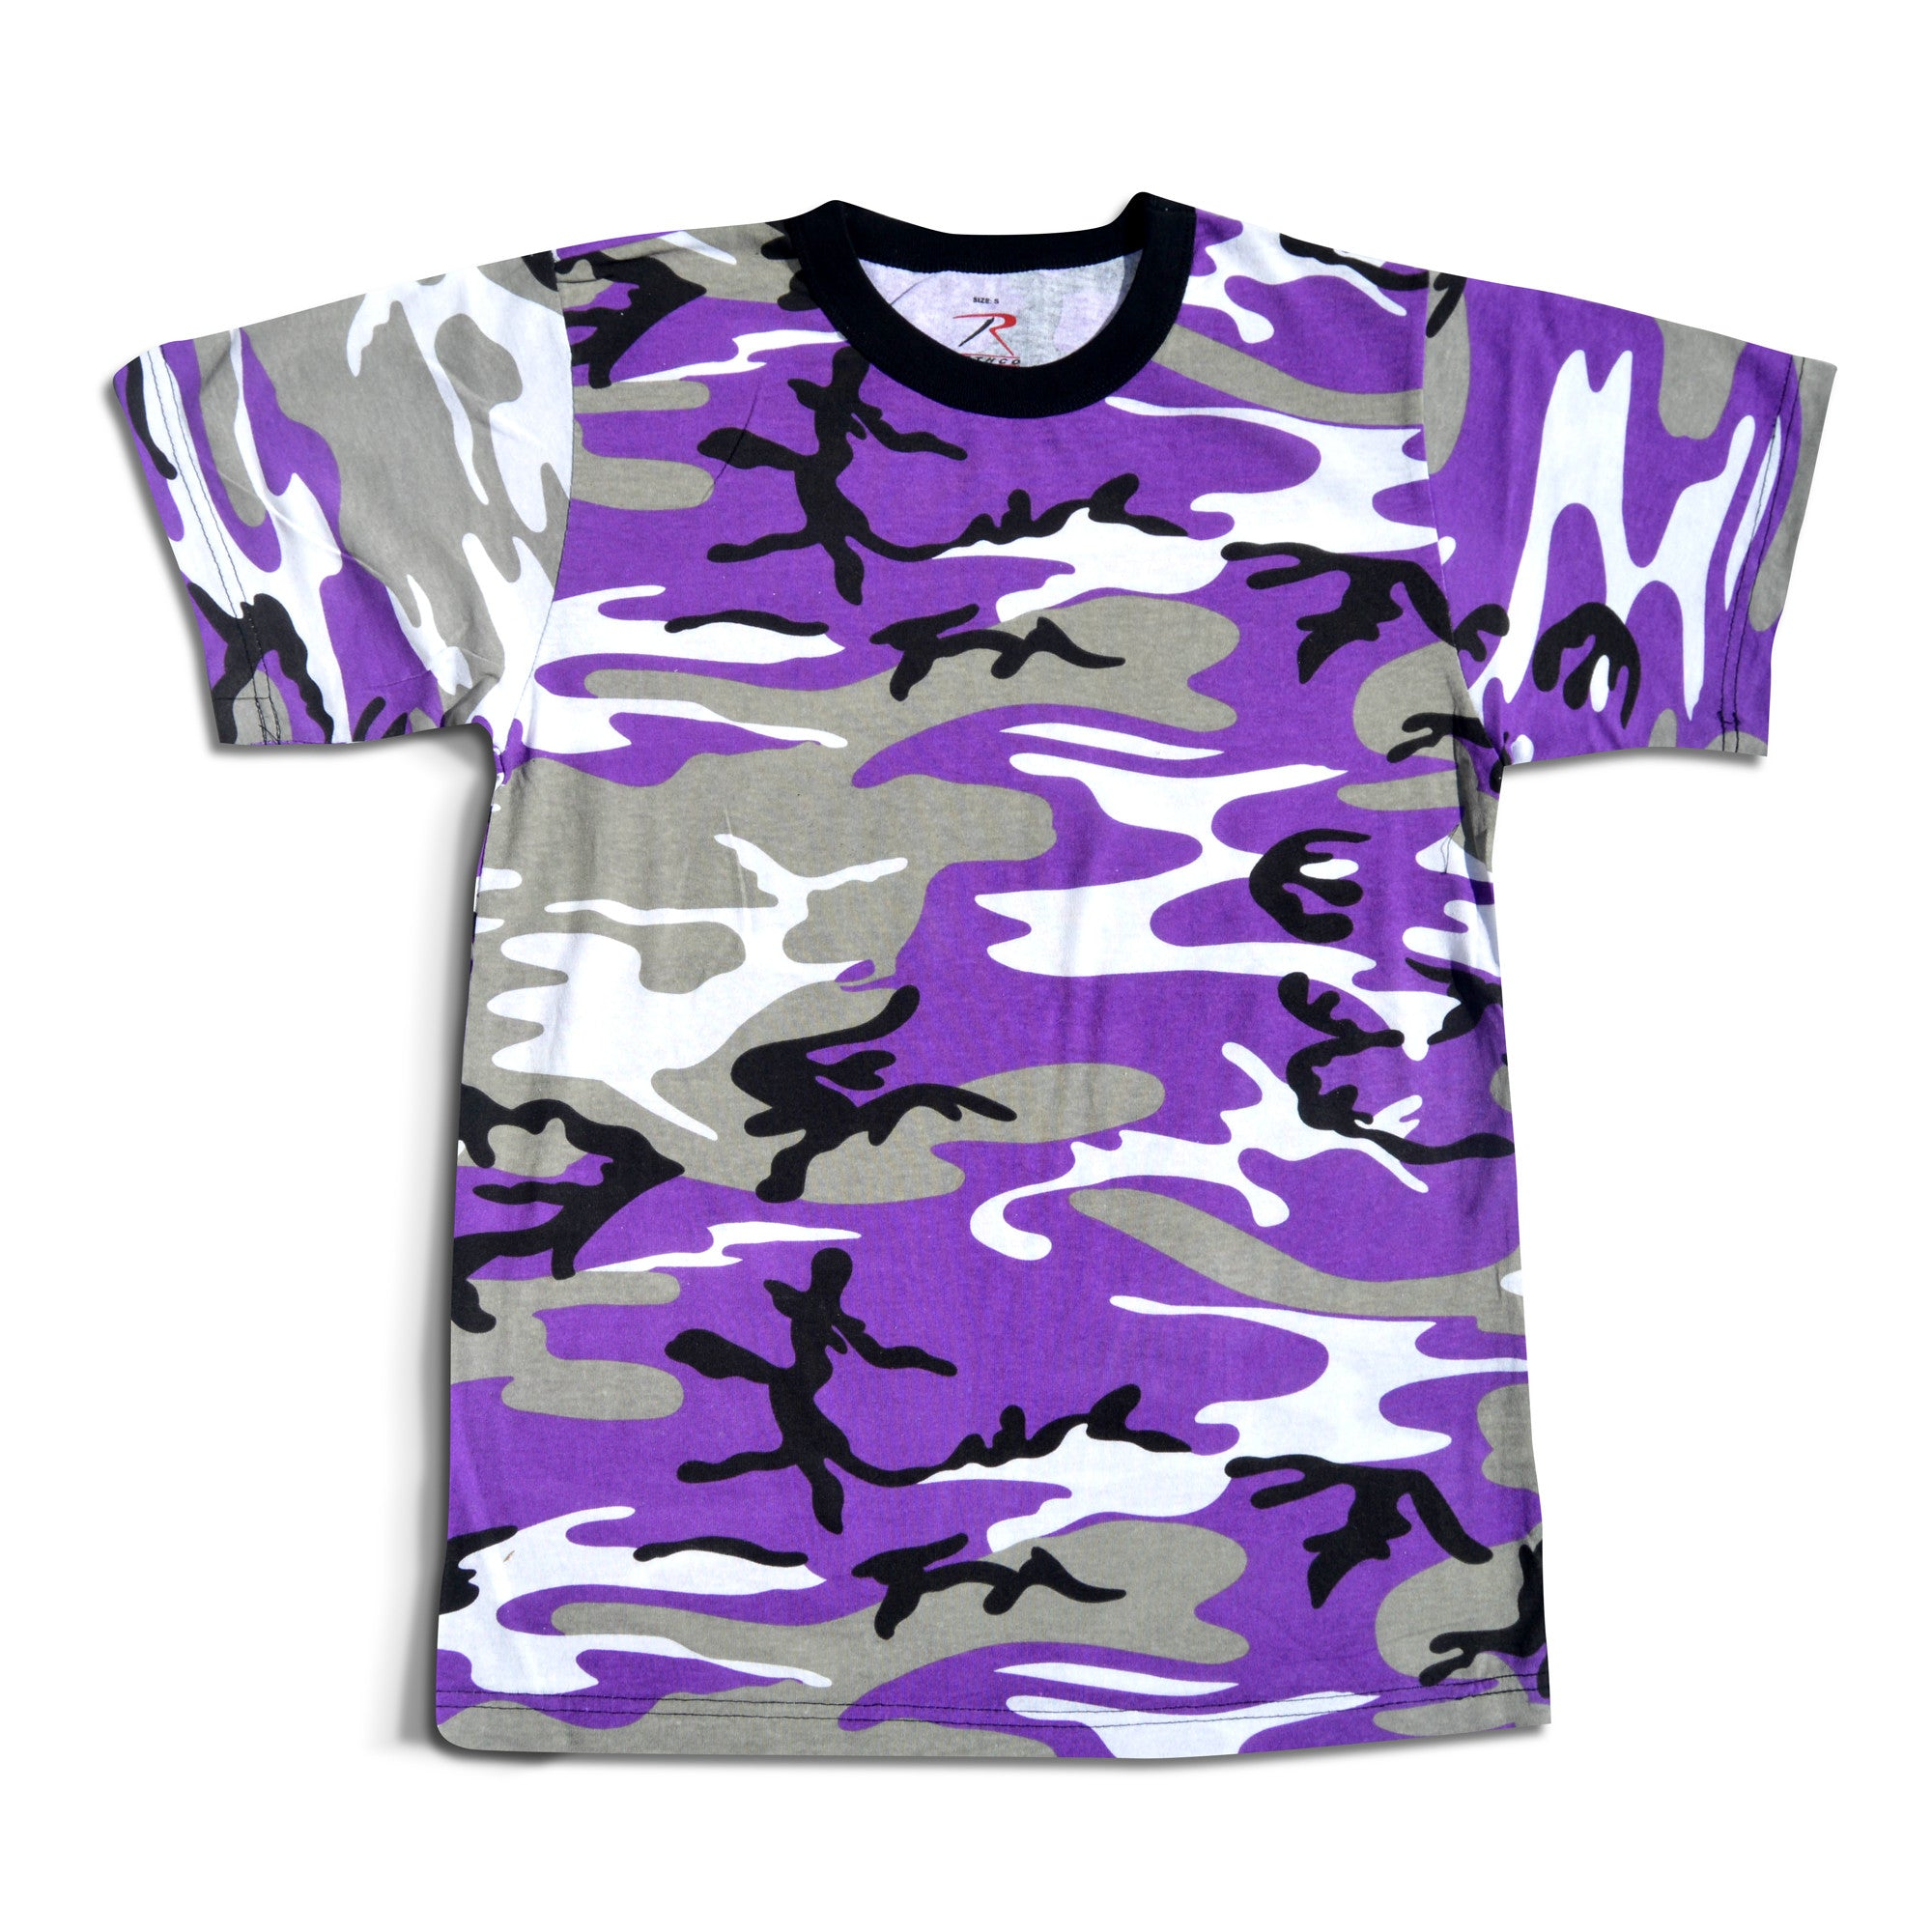 e6a0545a196f Rothco - Purple Camo T-Shirt – Streetwear Official